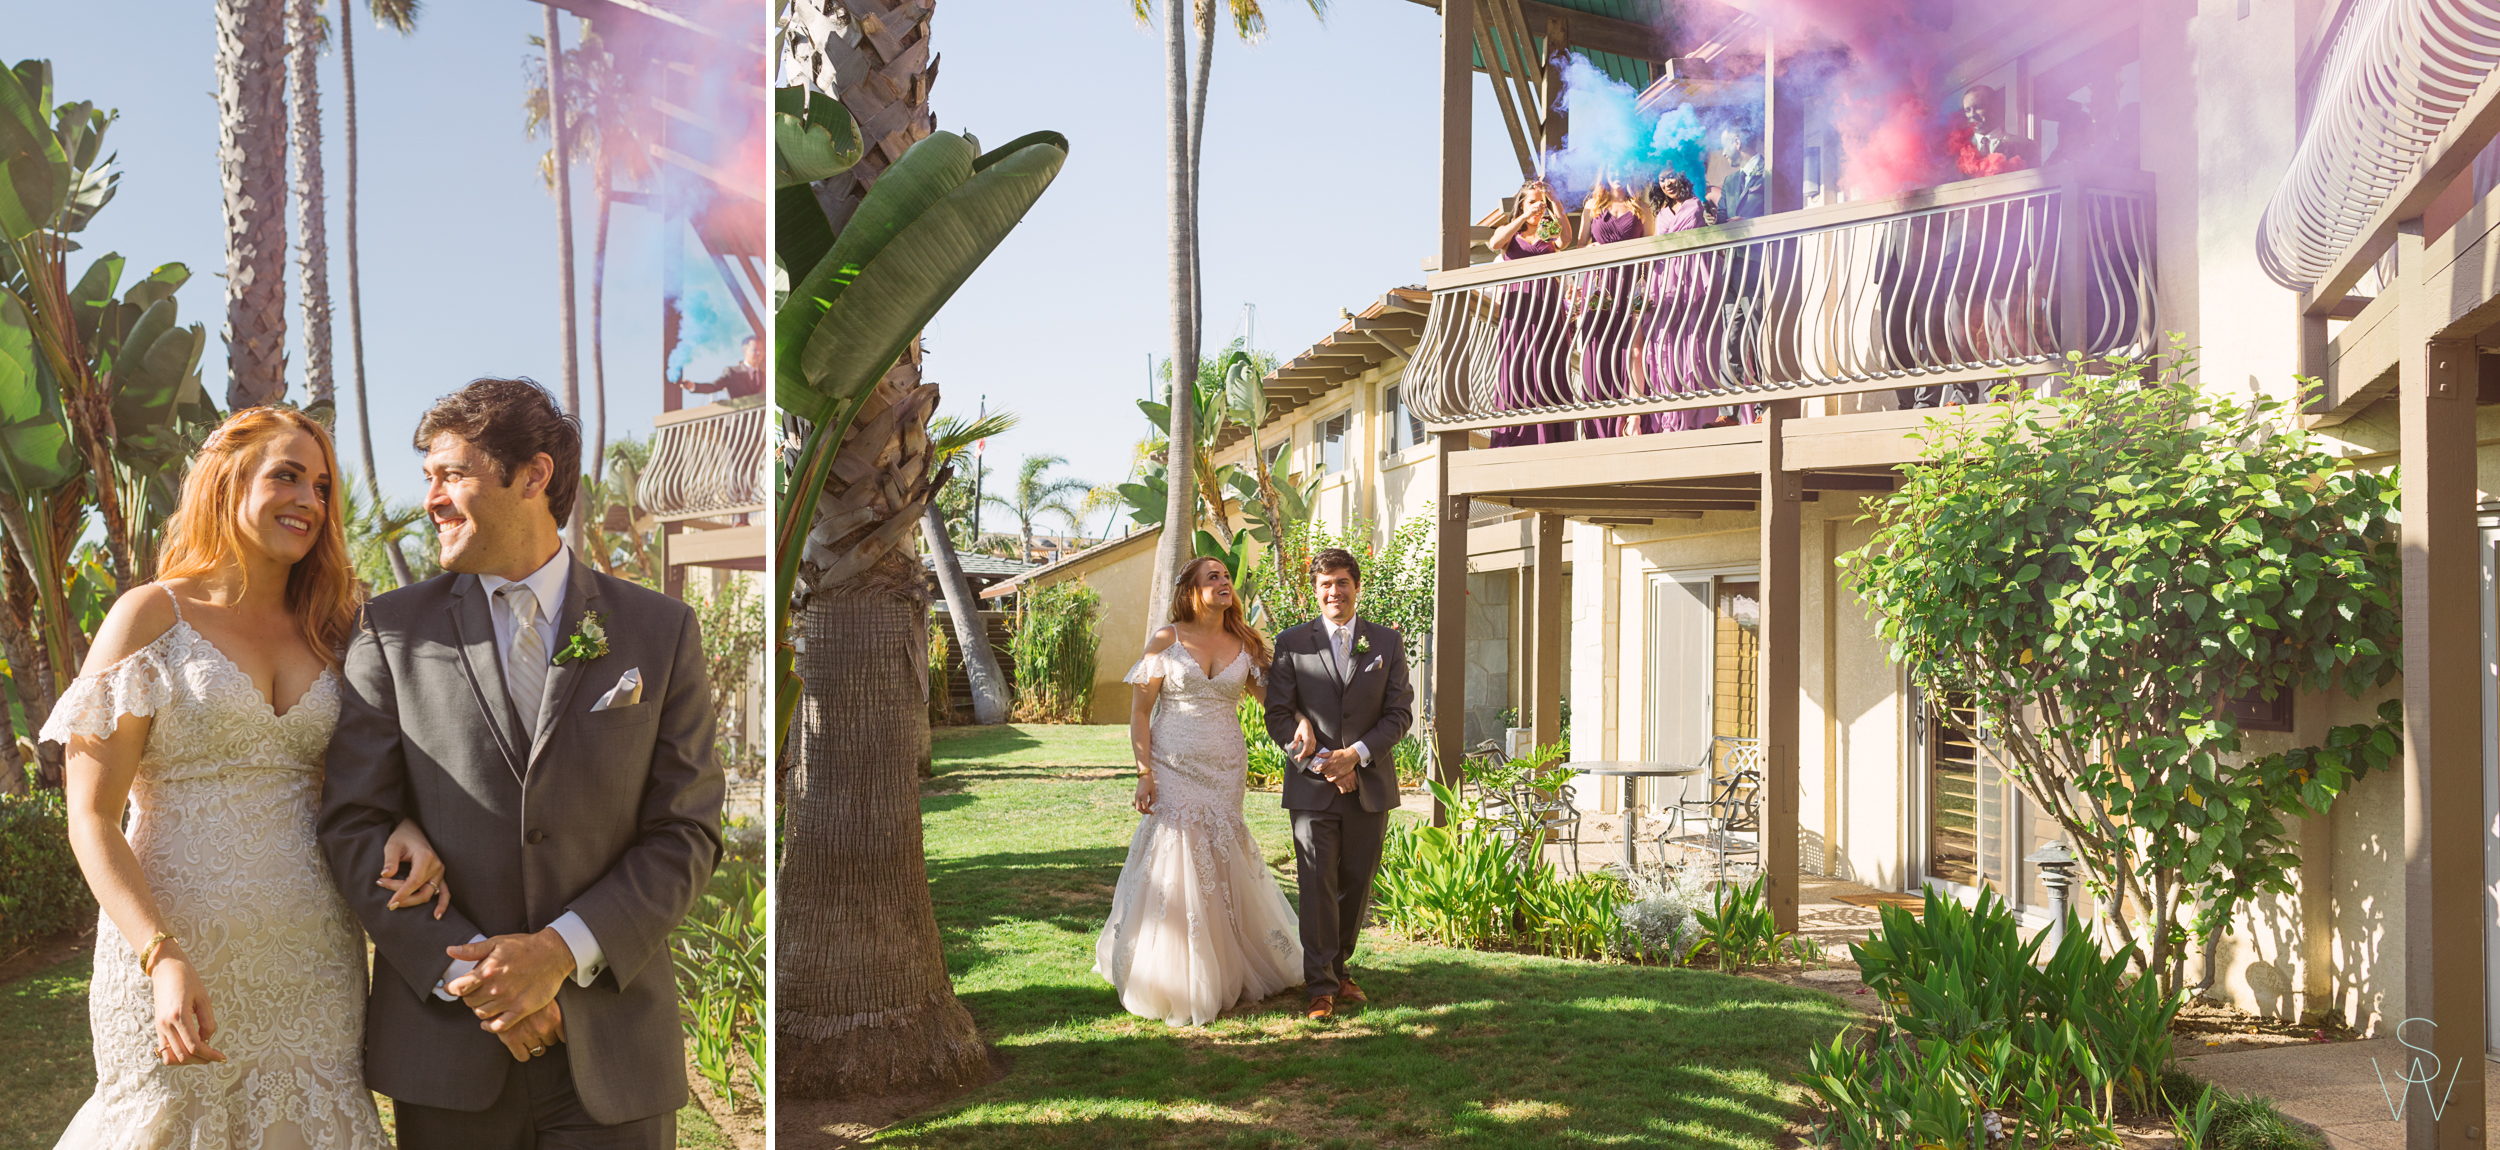 133San.diego.wedding.shewanders.photography.JPG